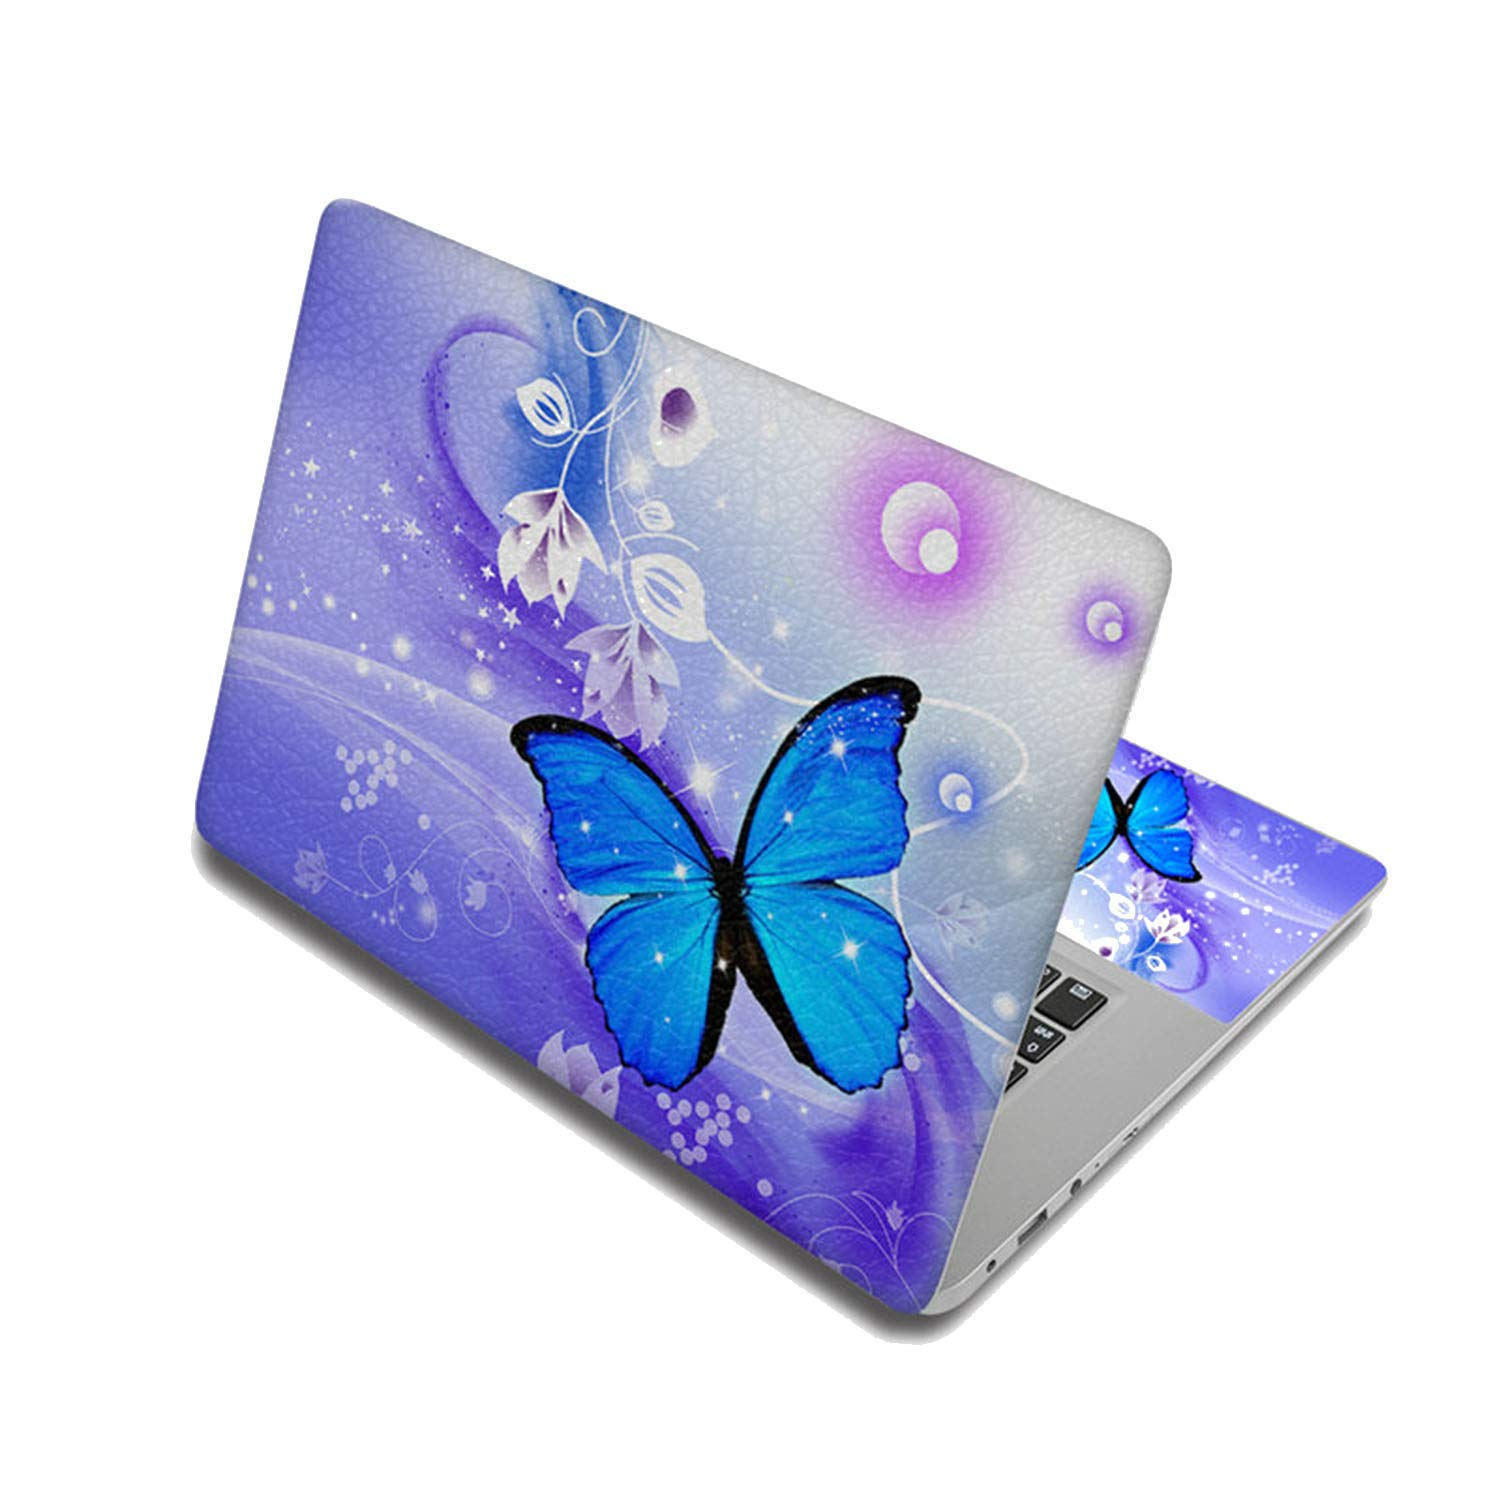 Butterfly Stickers Laptop Skin Decals Computer Sticker For Lenovo/Hp/Macbook Air/Dell,15 Inch,Laptop Skin 3